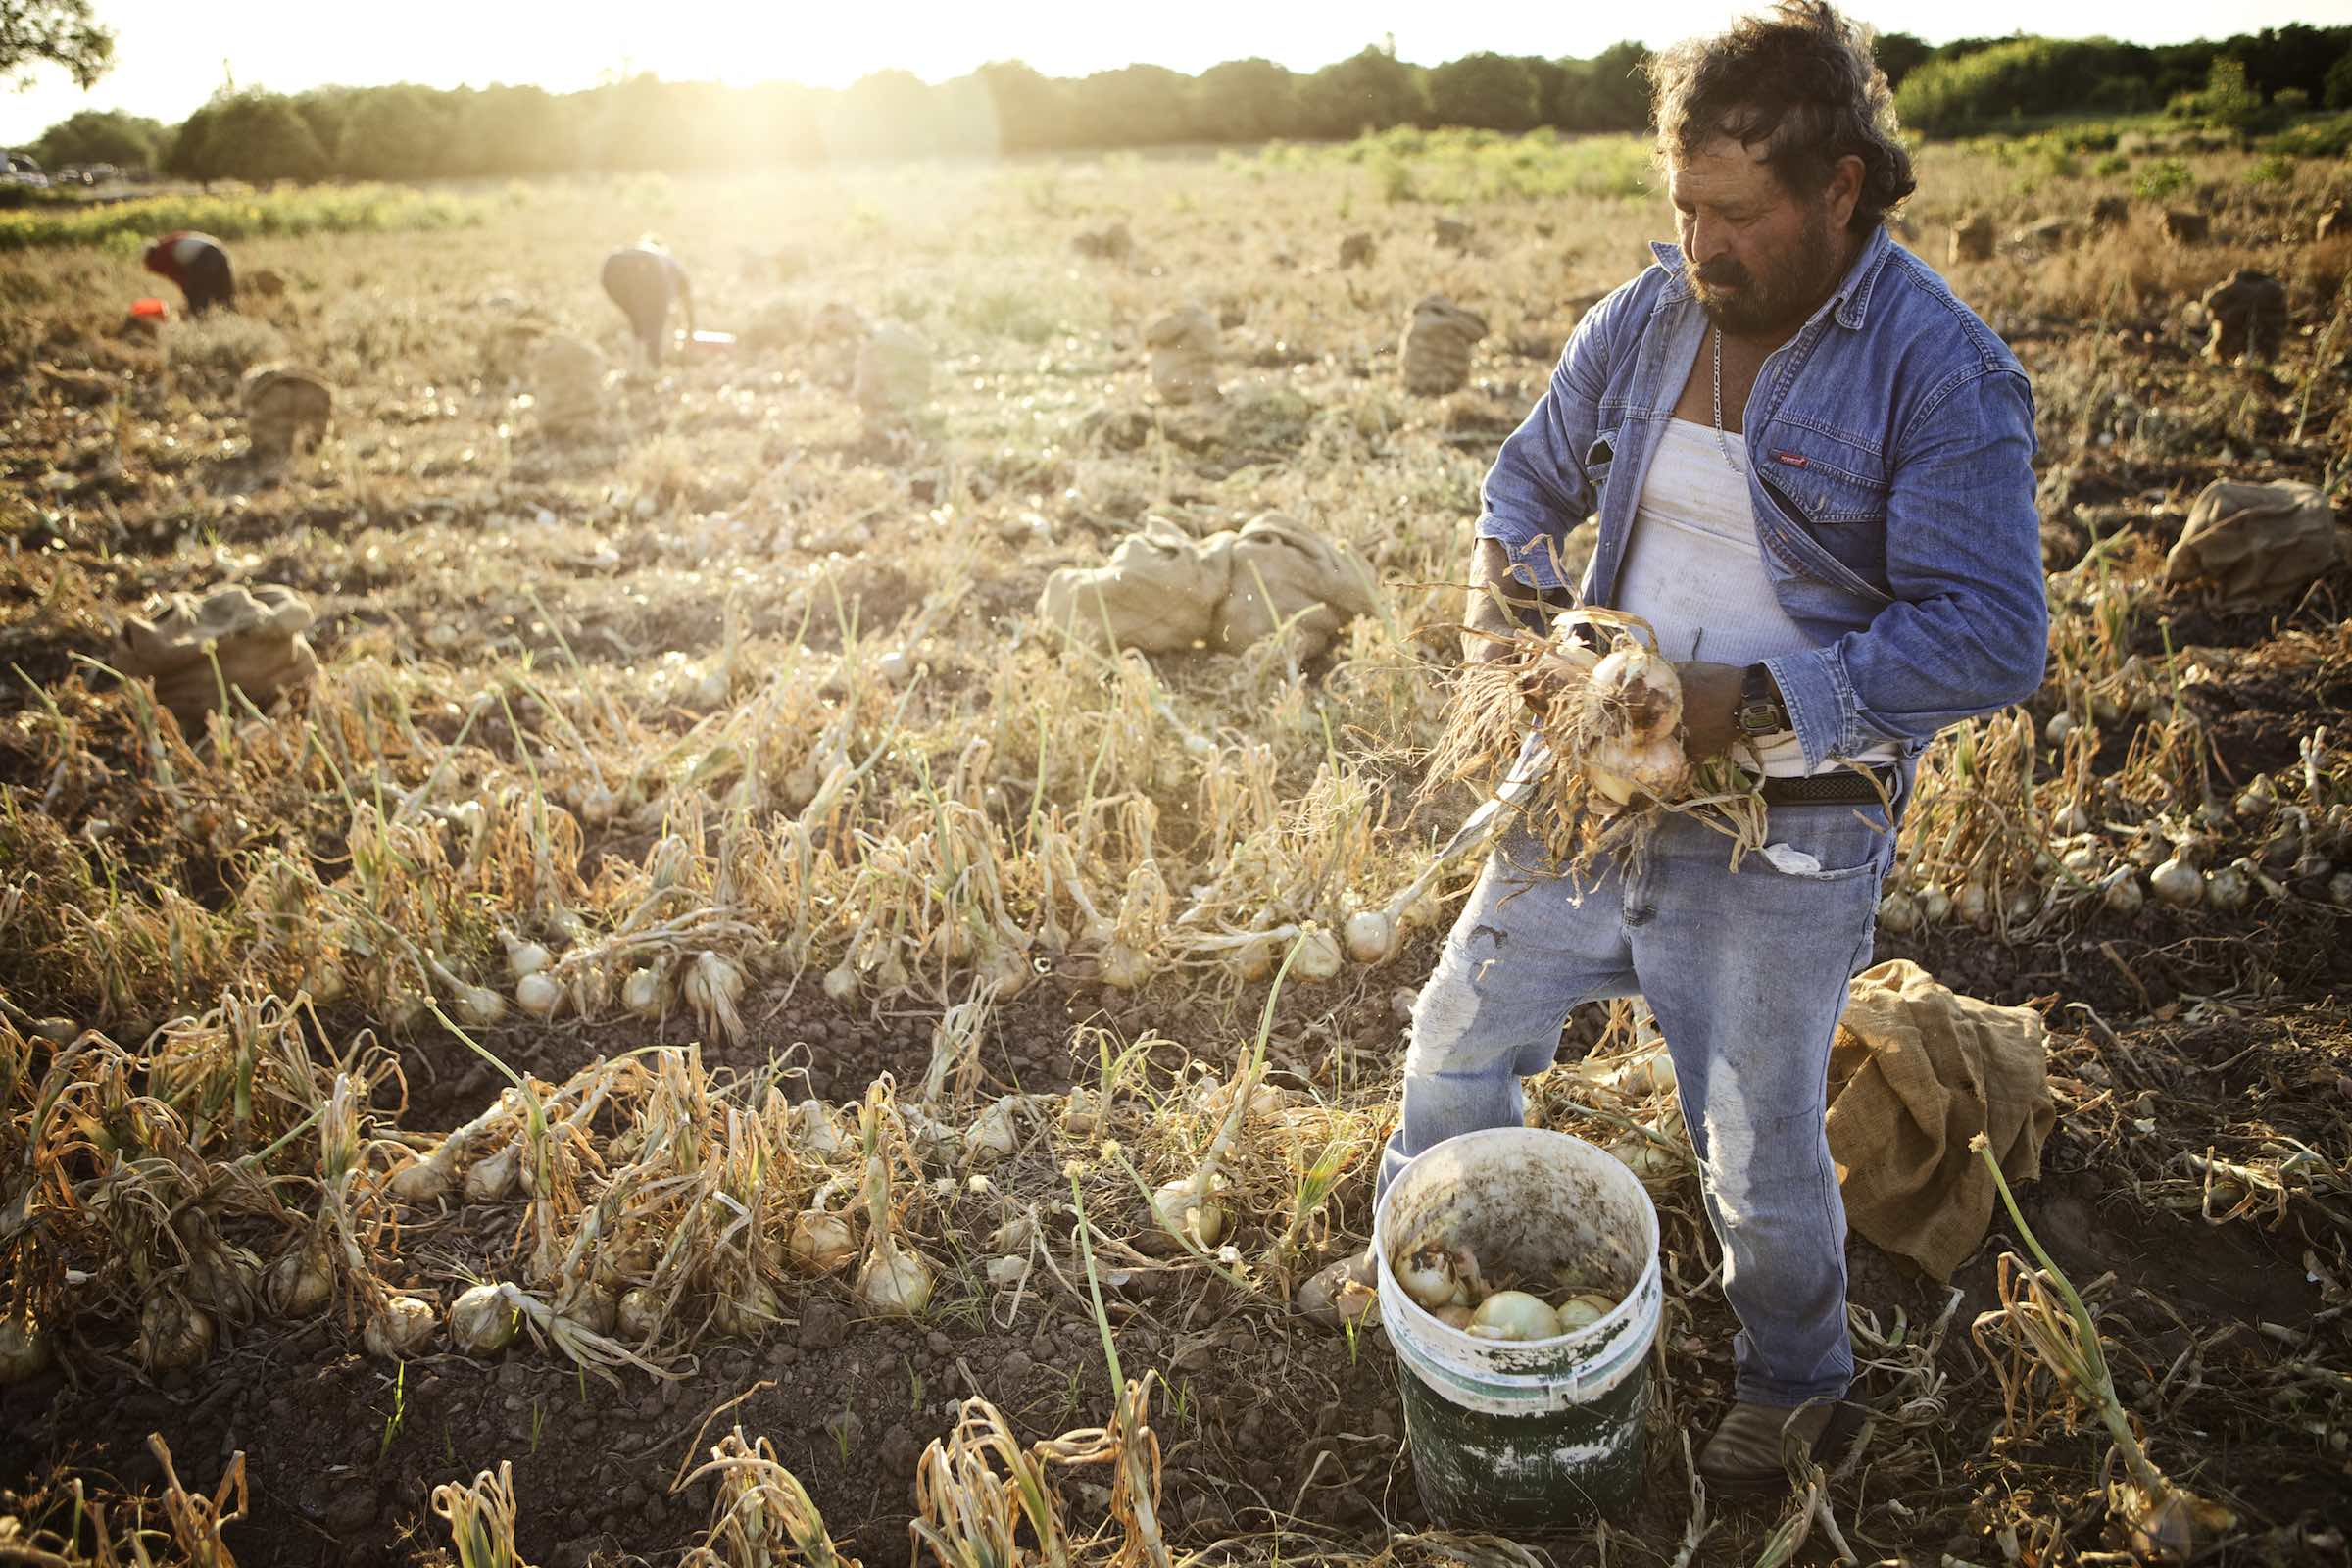 Jody Horton Photography - Farmer taking onions from the soil and placing them in a  bucket.